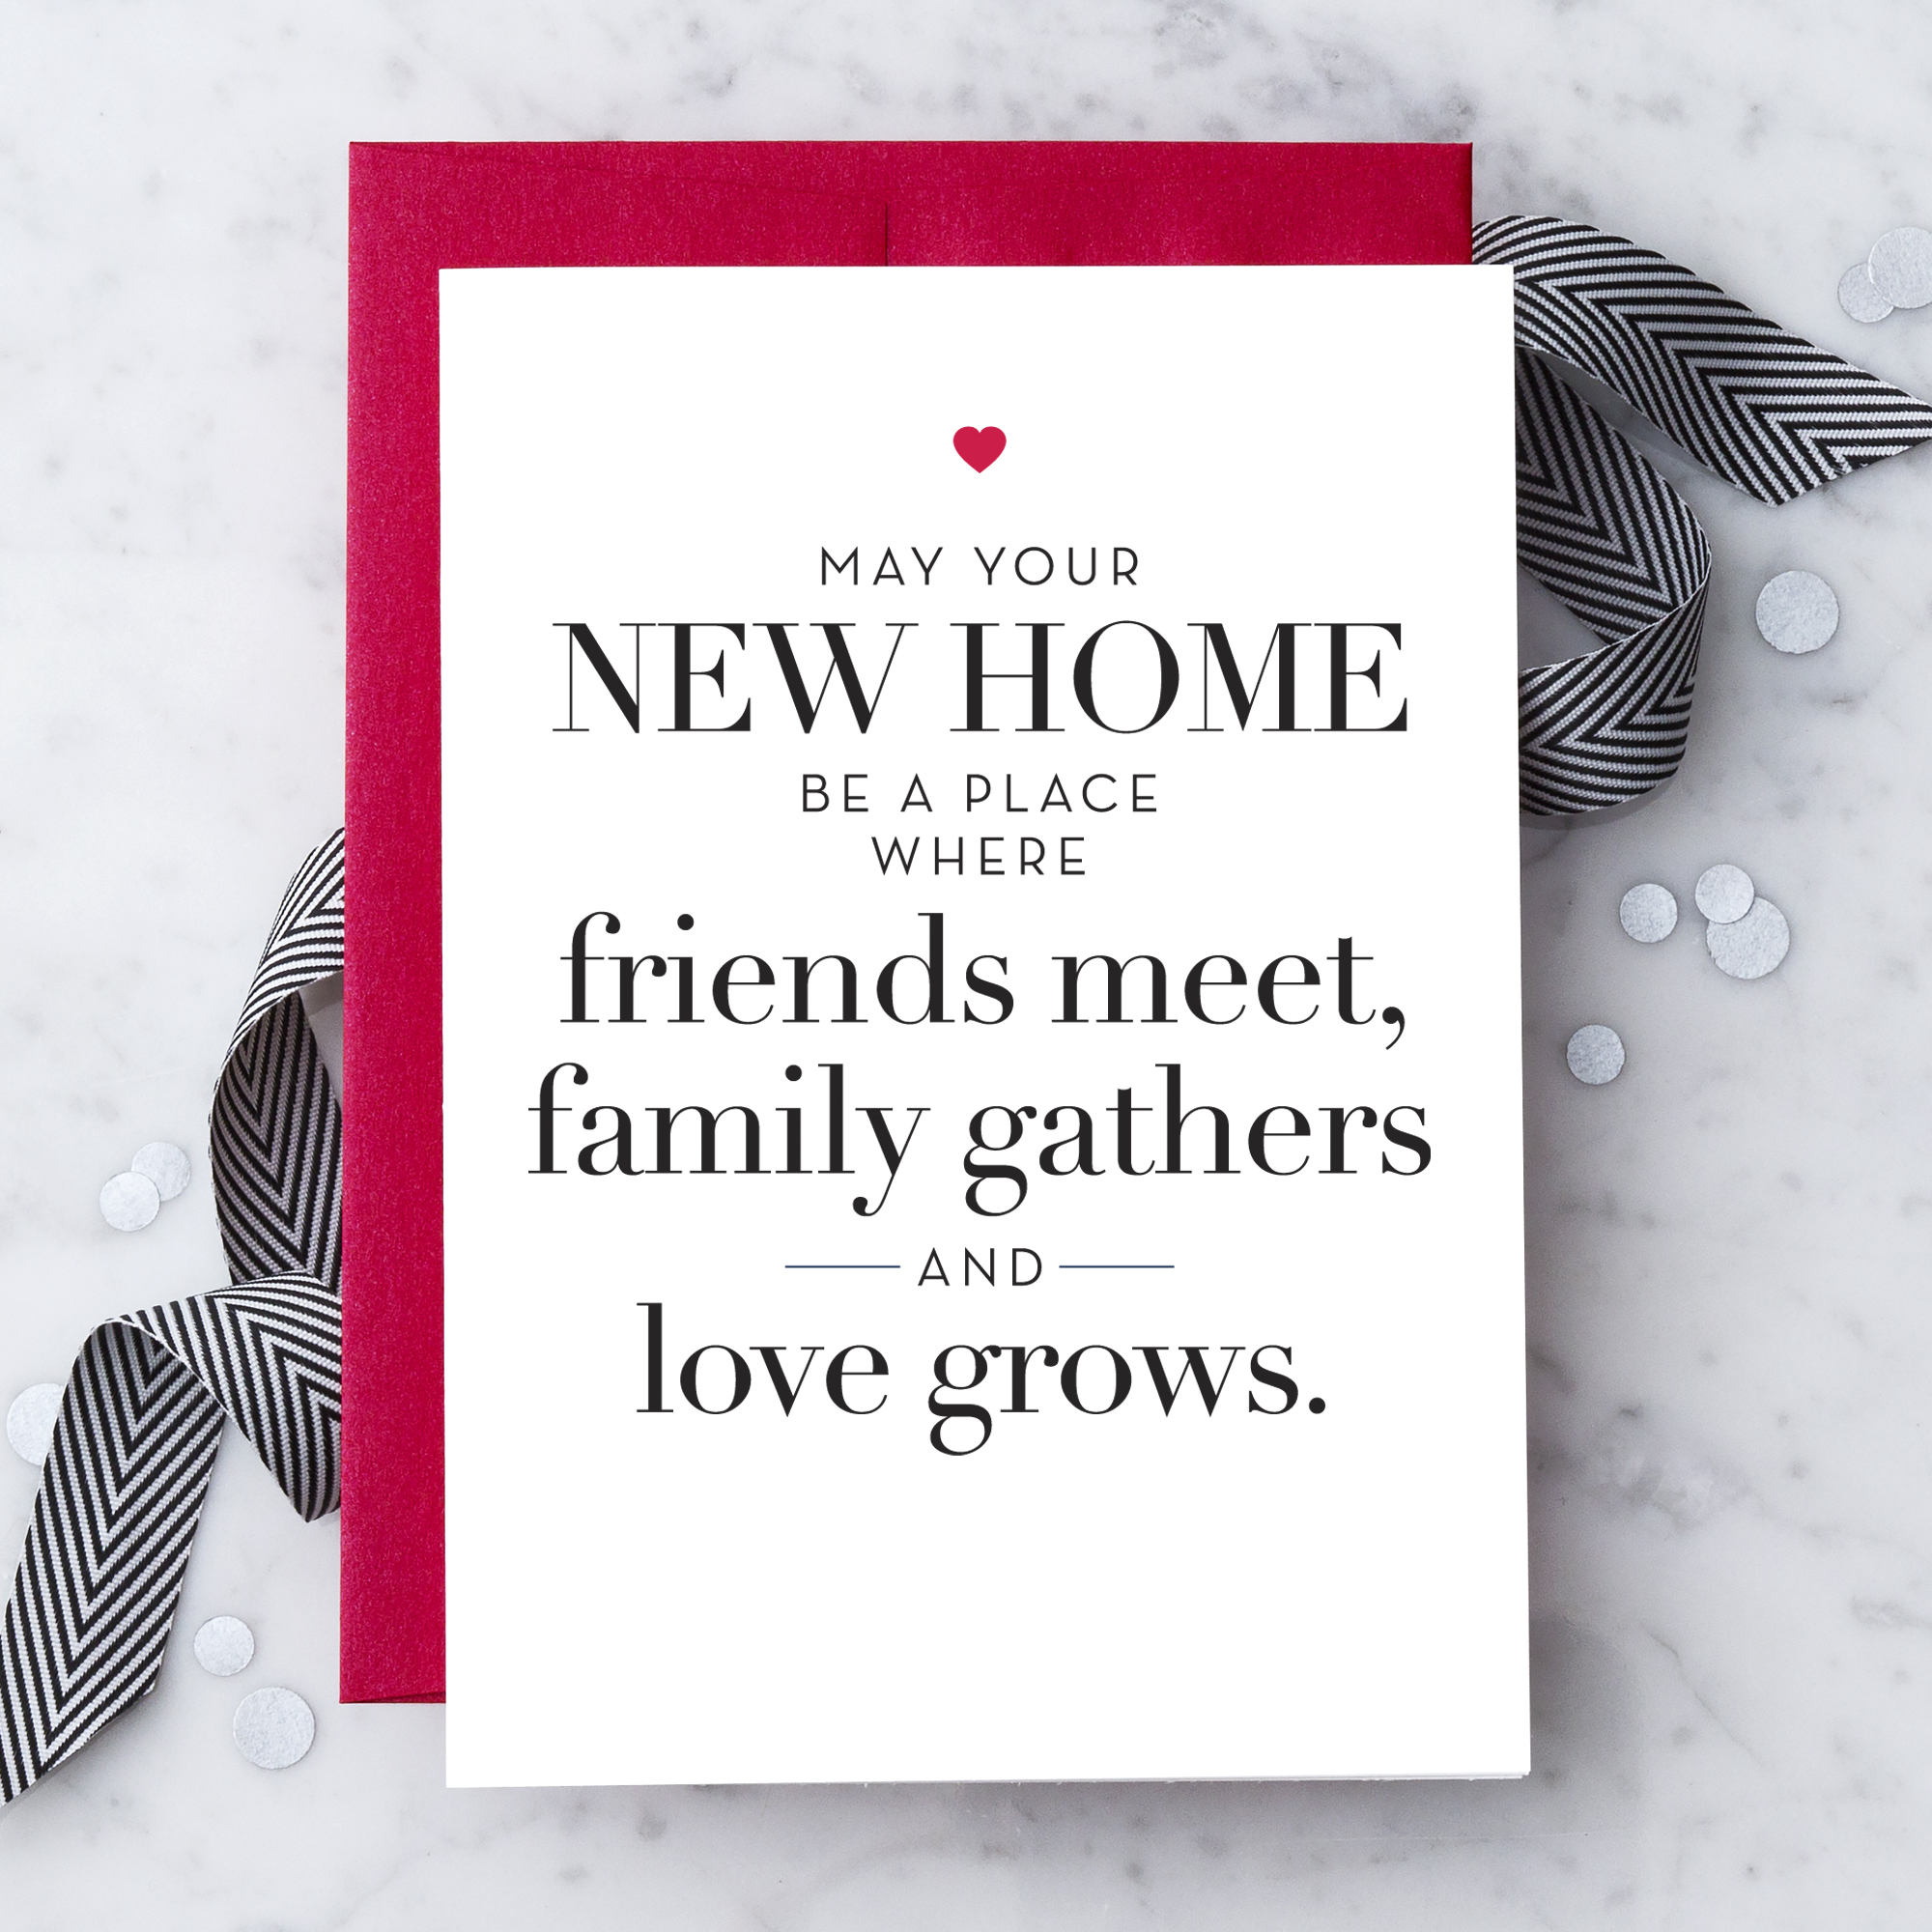 Housewarming Greeting Cards Design With Heart Studio